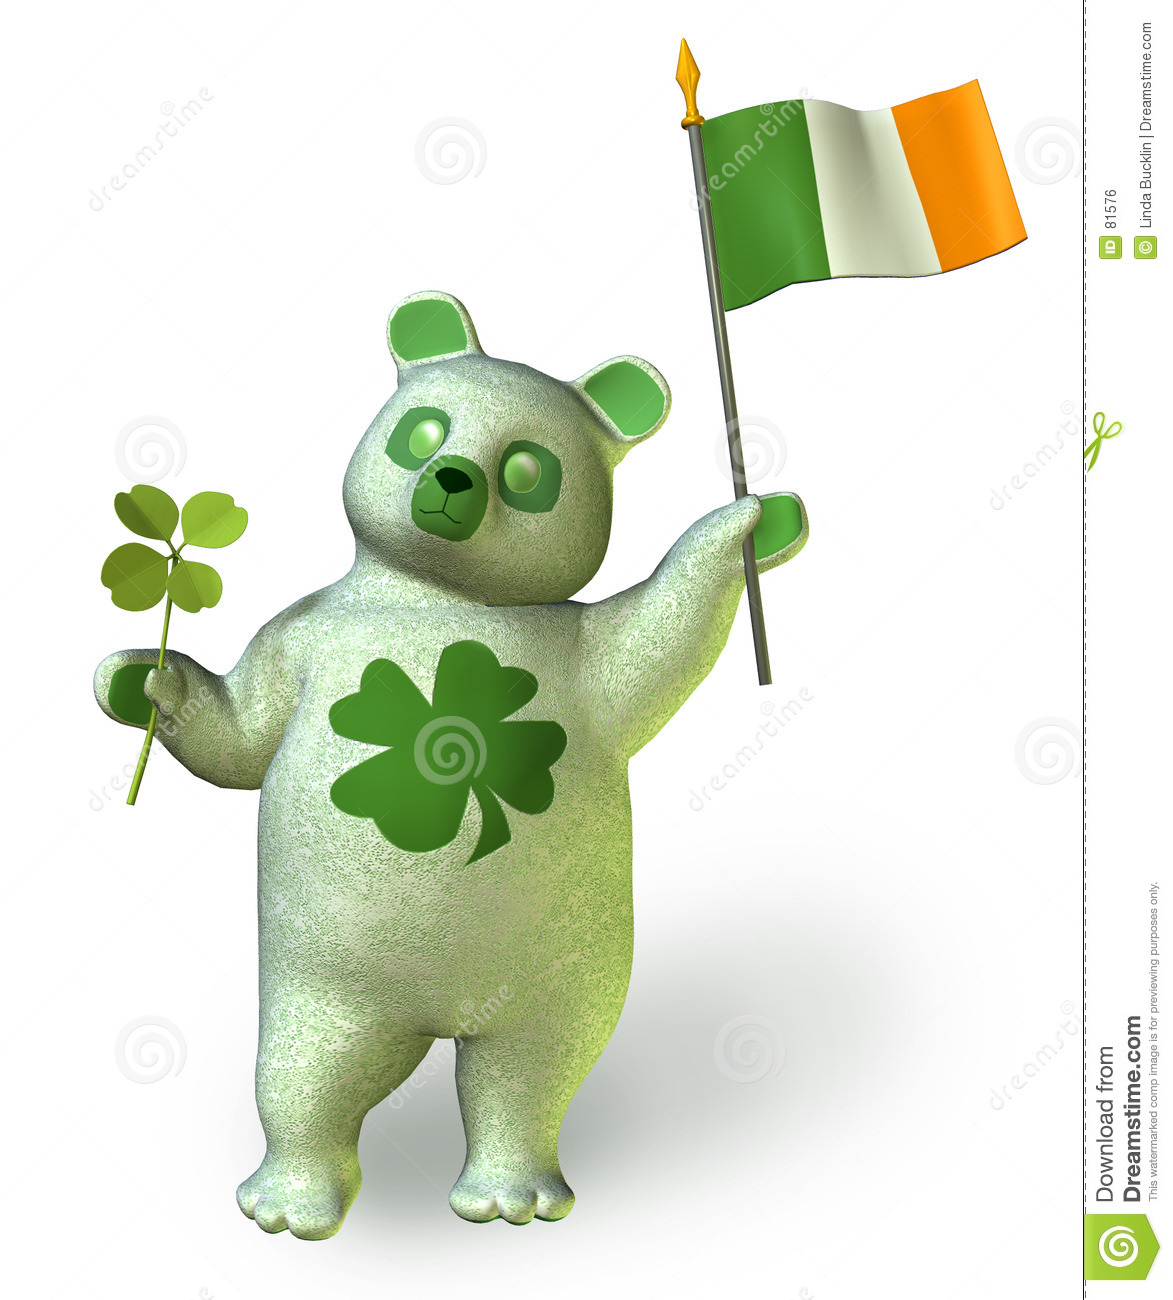 Irish Bear _ includes clipping path